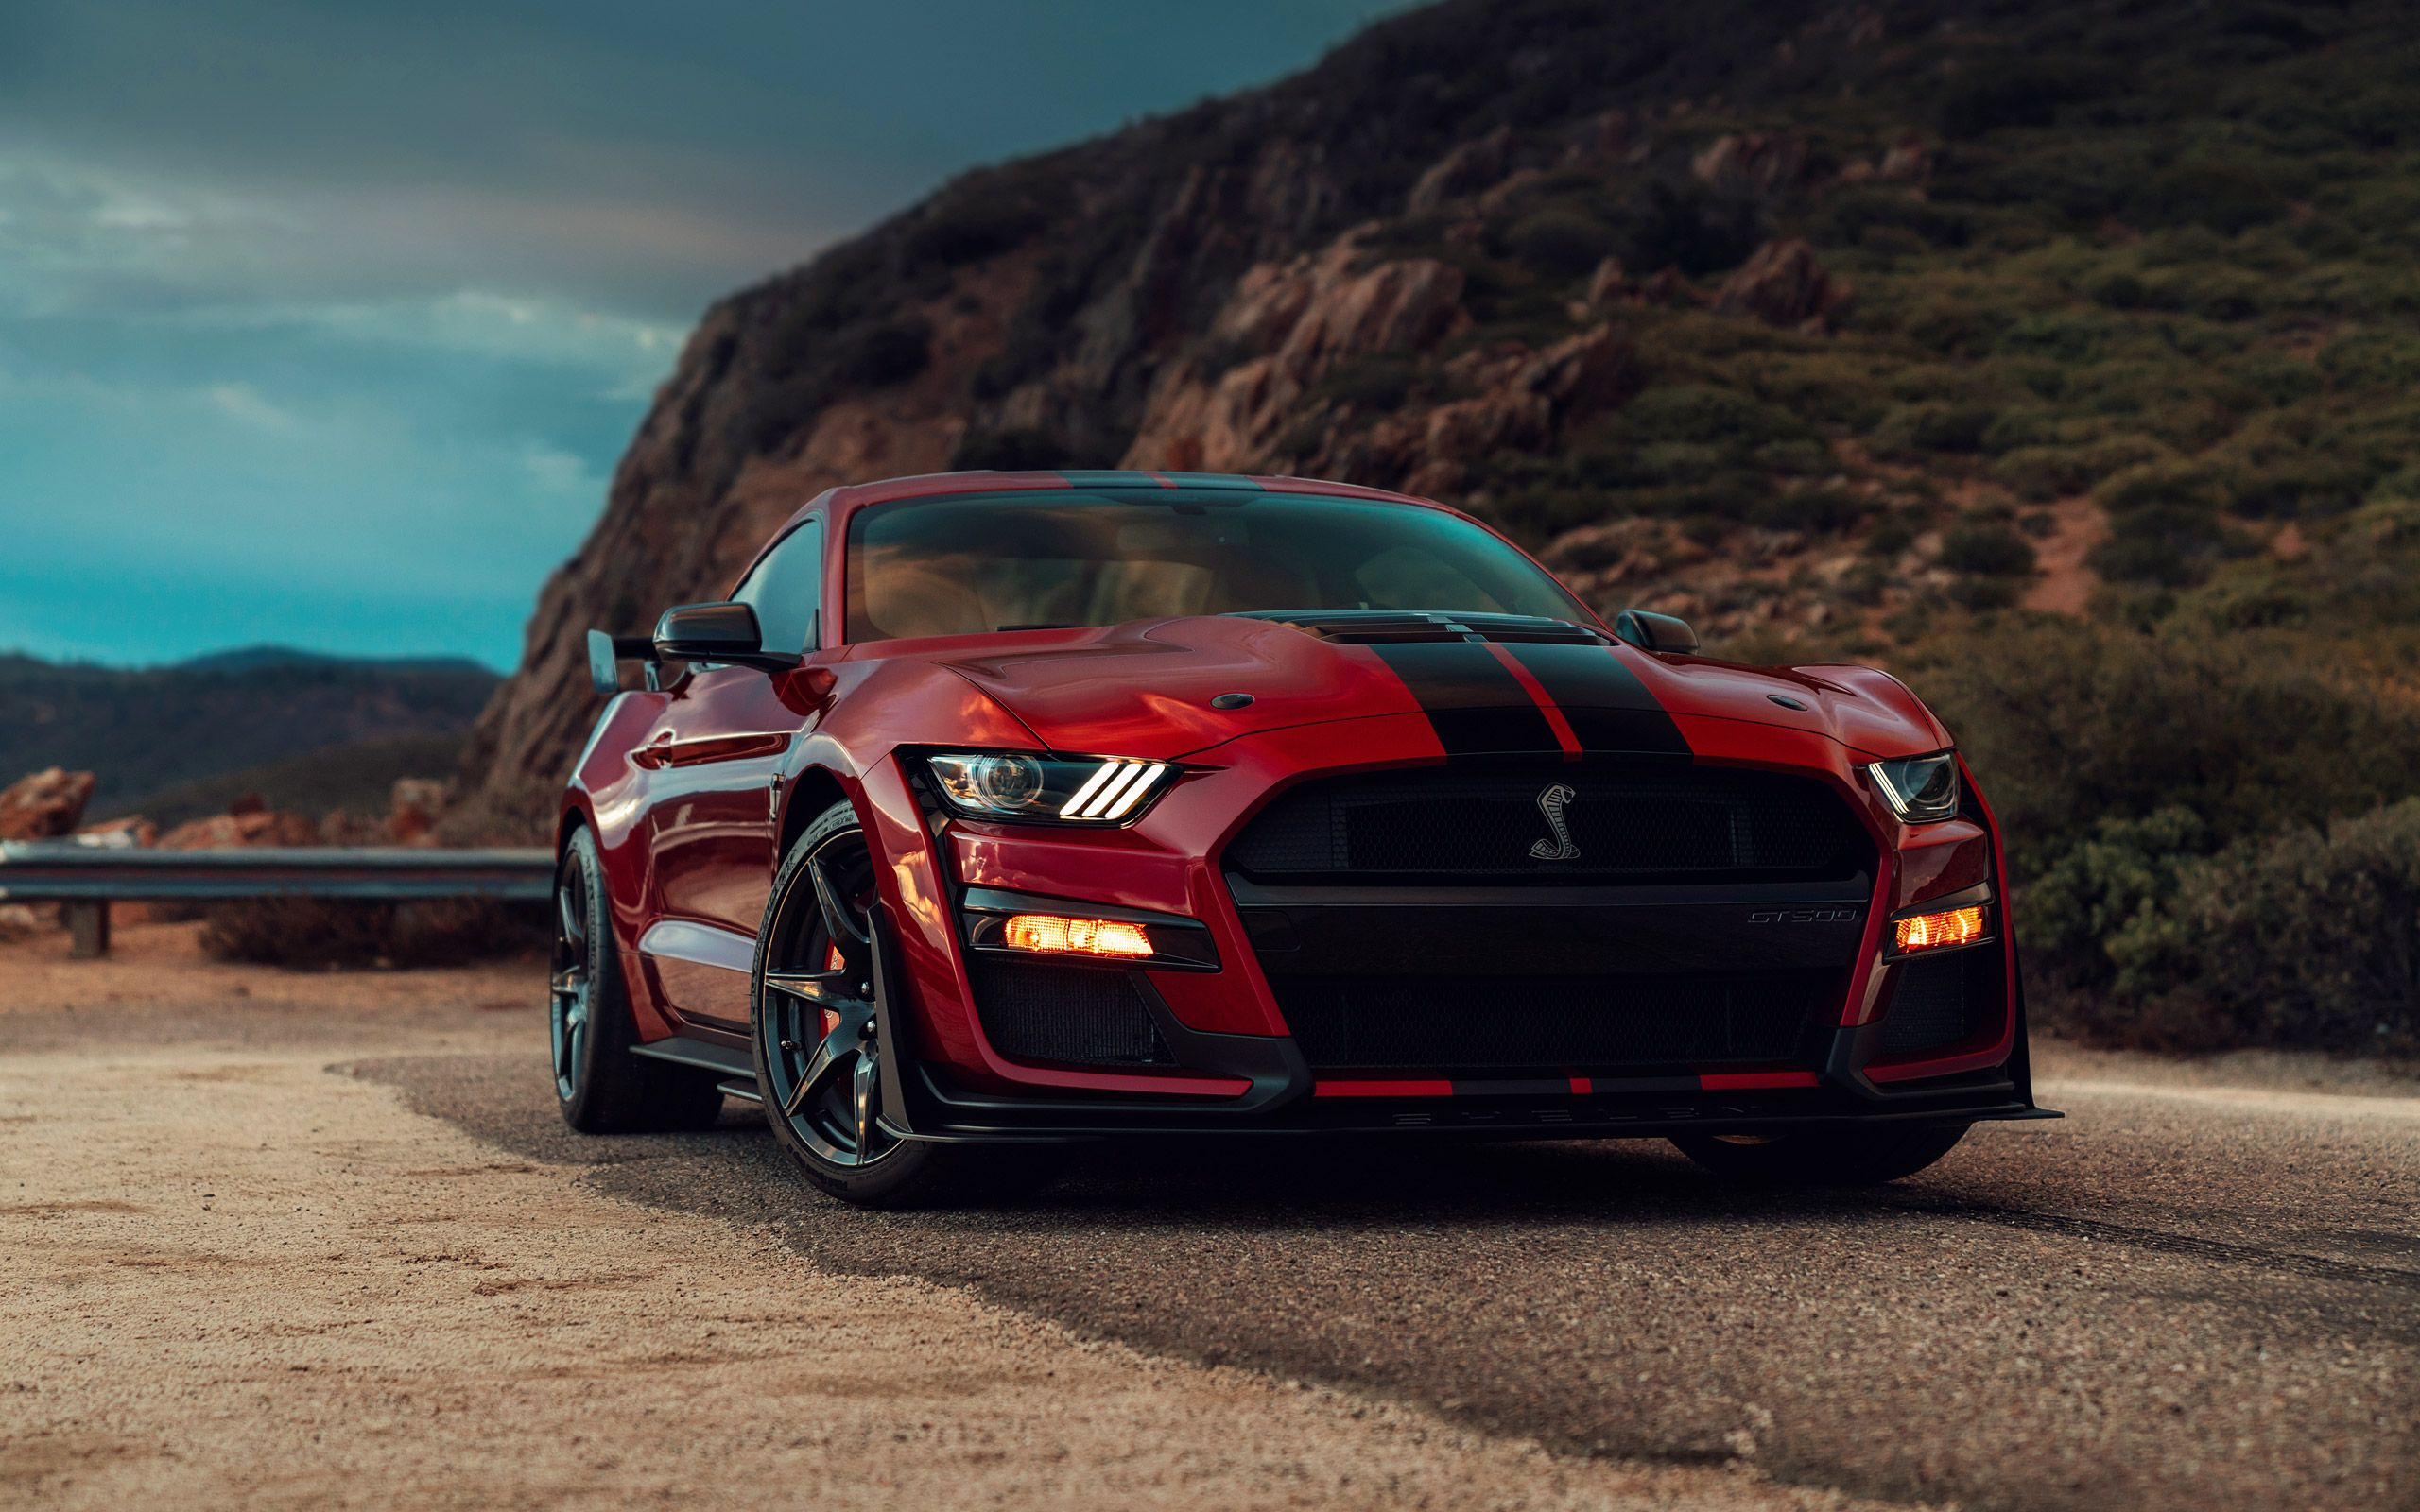 Download Your Free Wallpaper Wsupercars Ford Mustang Shelby Gt500 Shelby Gt500 Mustang Shelby